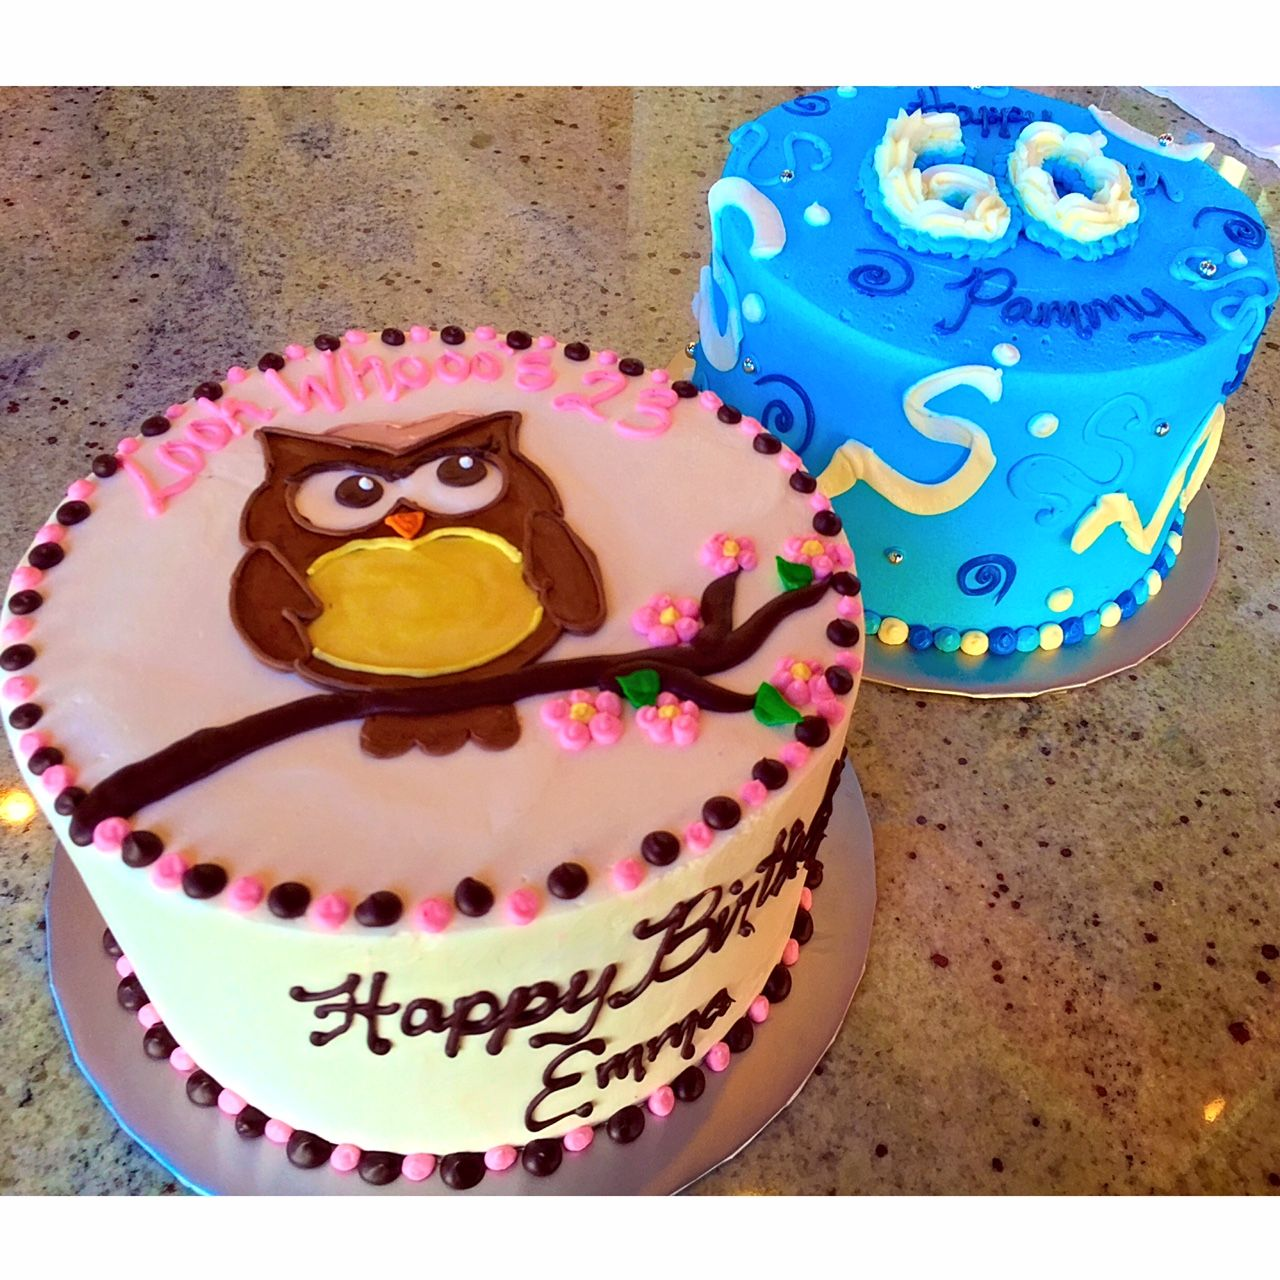 Save 5 on a custom cake at Decadent Designs Bakery in Ballantyne